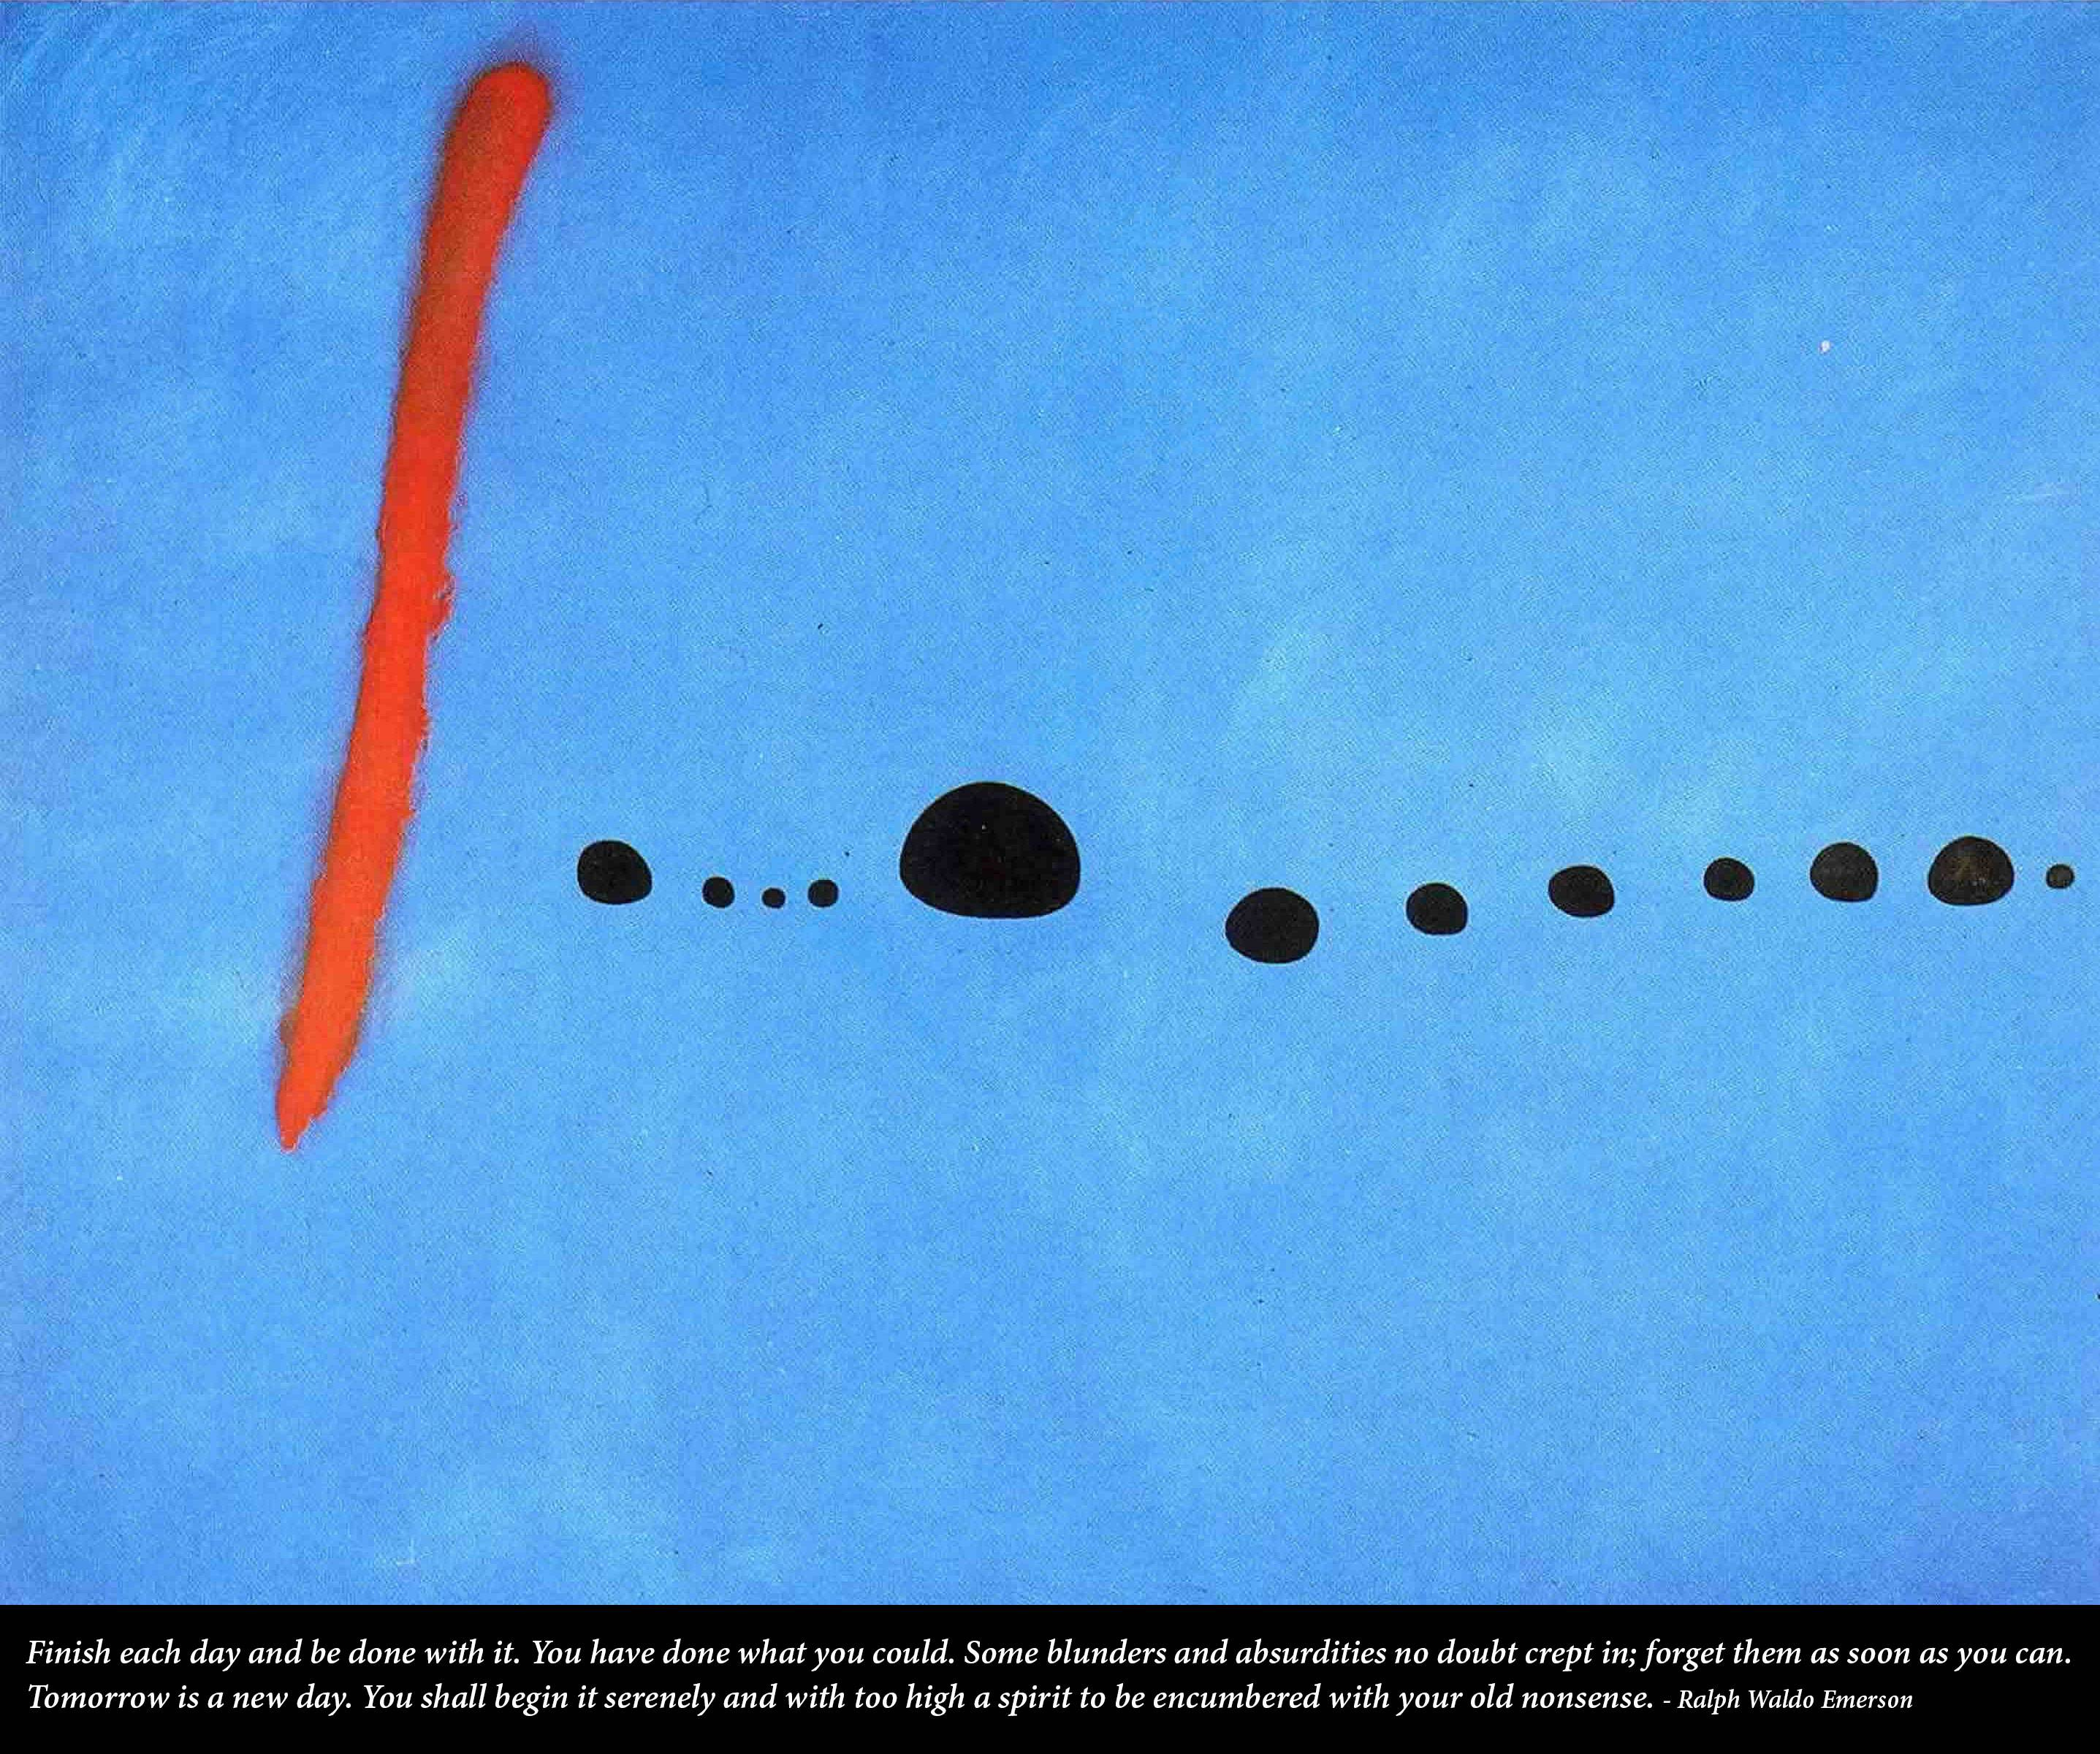 [Image] Tomorrow is a new day (Emerson quote, Miro painting)